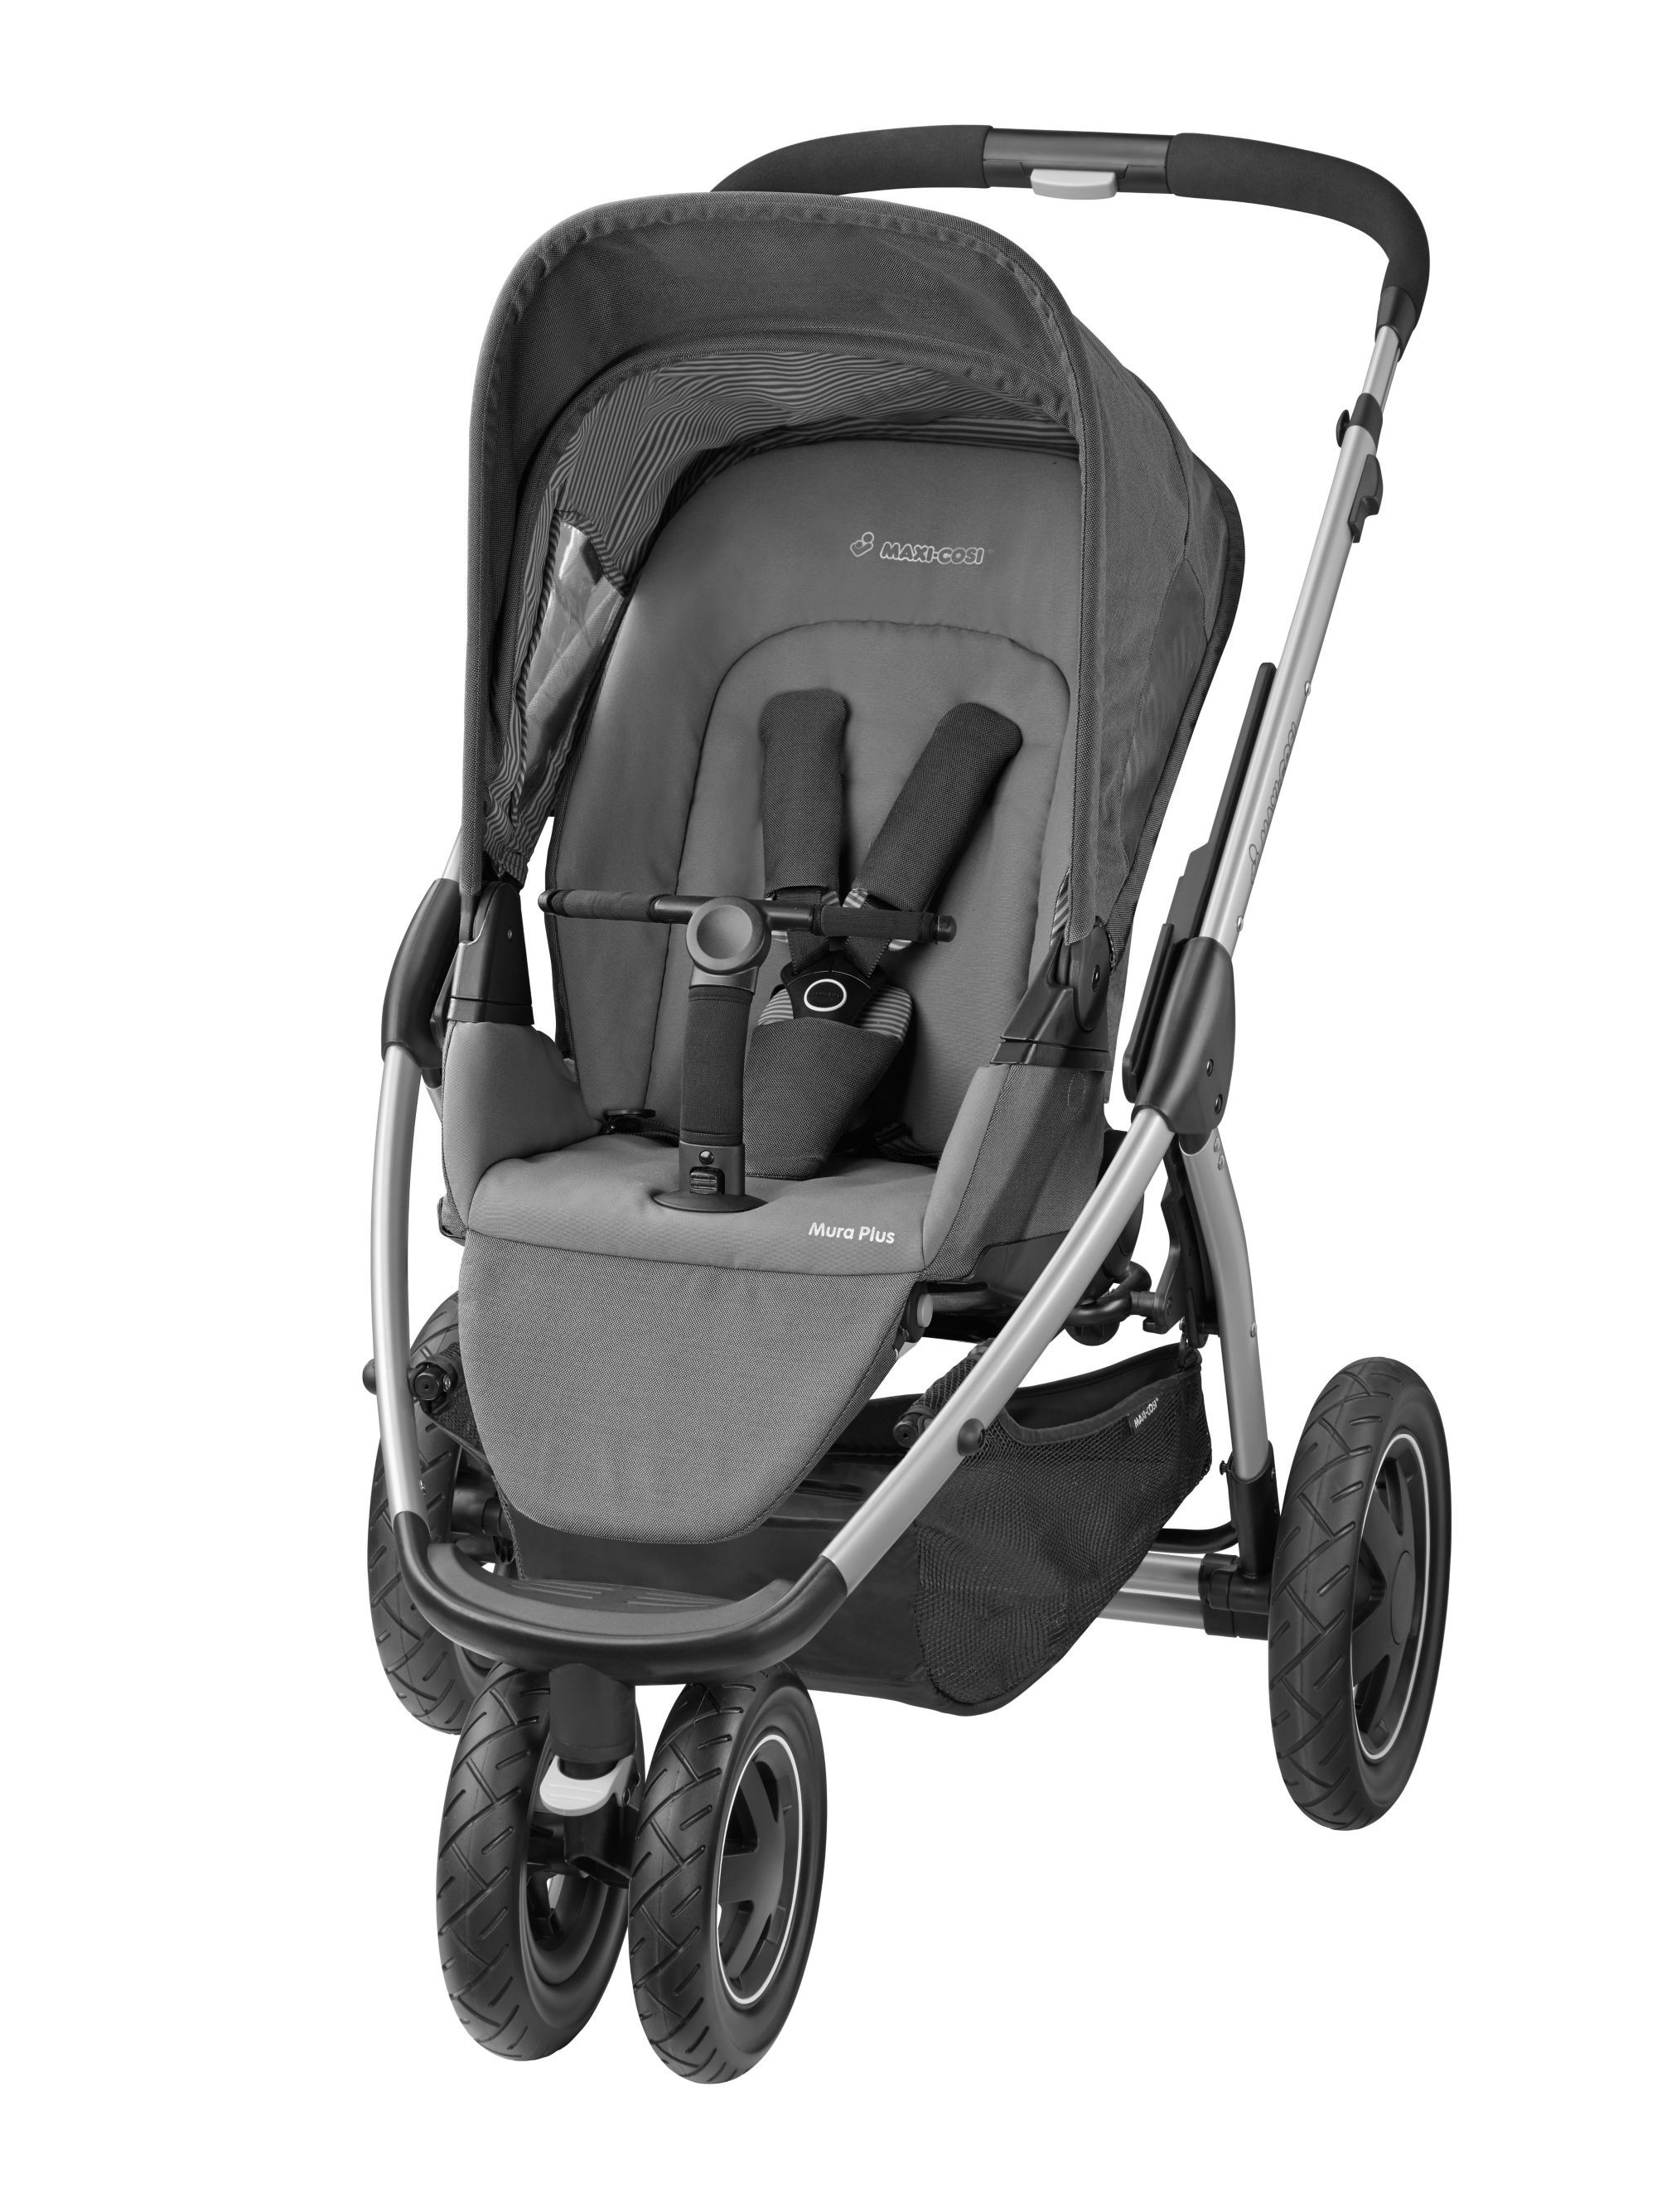 Maxi-Cosi Mura Plus Pushchair - Concrete Grey | Stroller, Maxi